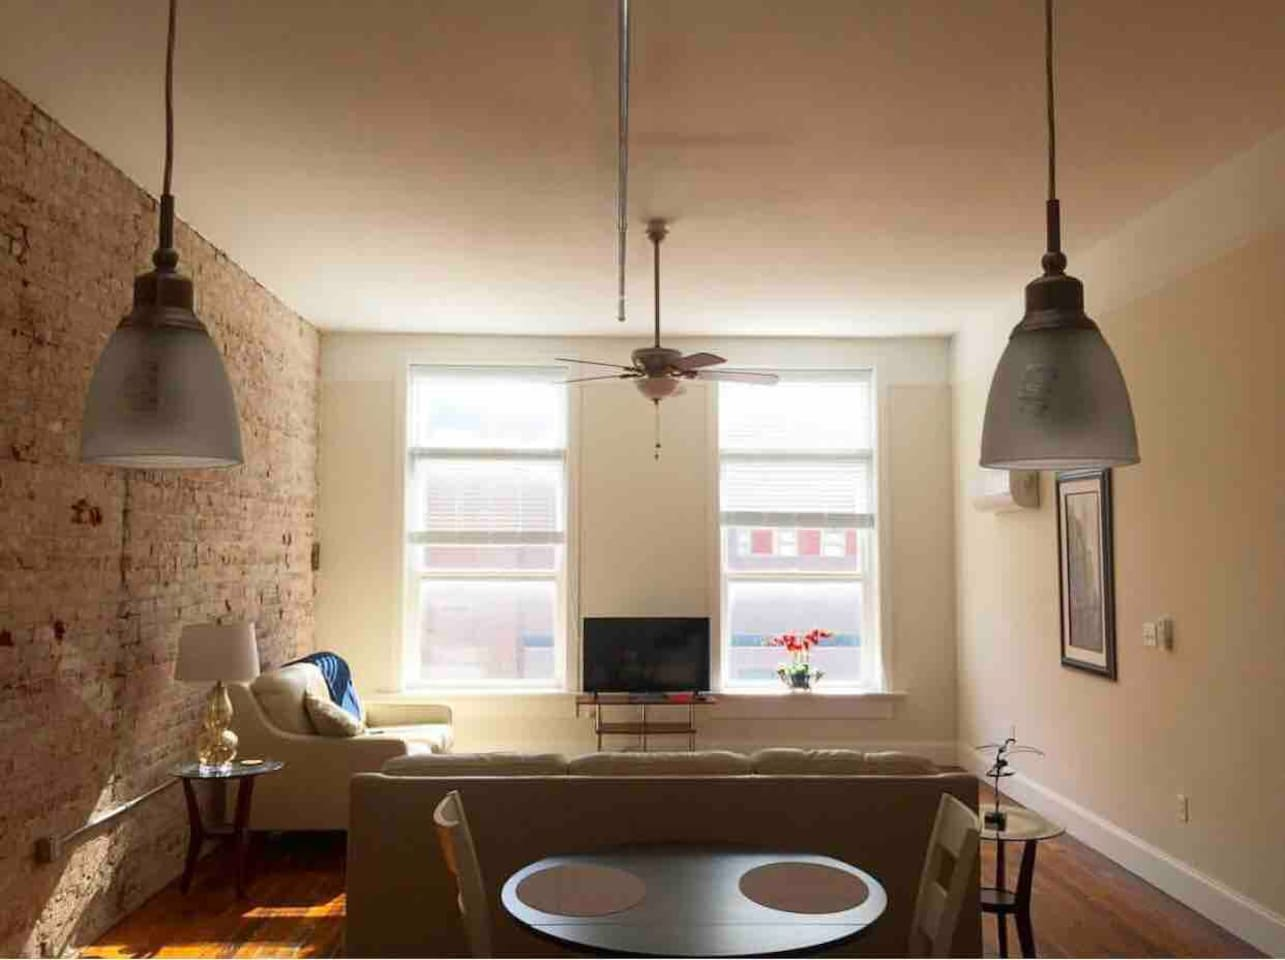 Open concept kitchen and living room overlooking Main St. Gorgeous light all day long, especially in the mornings!